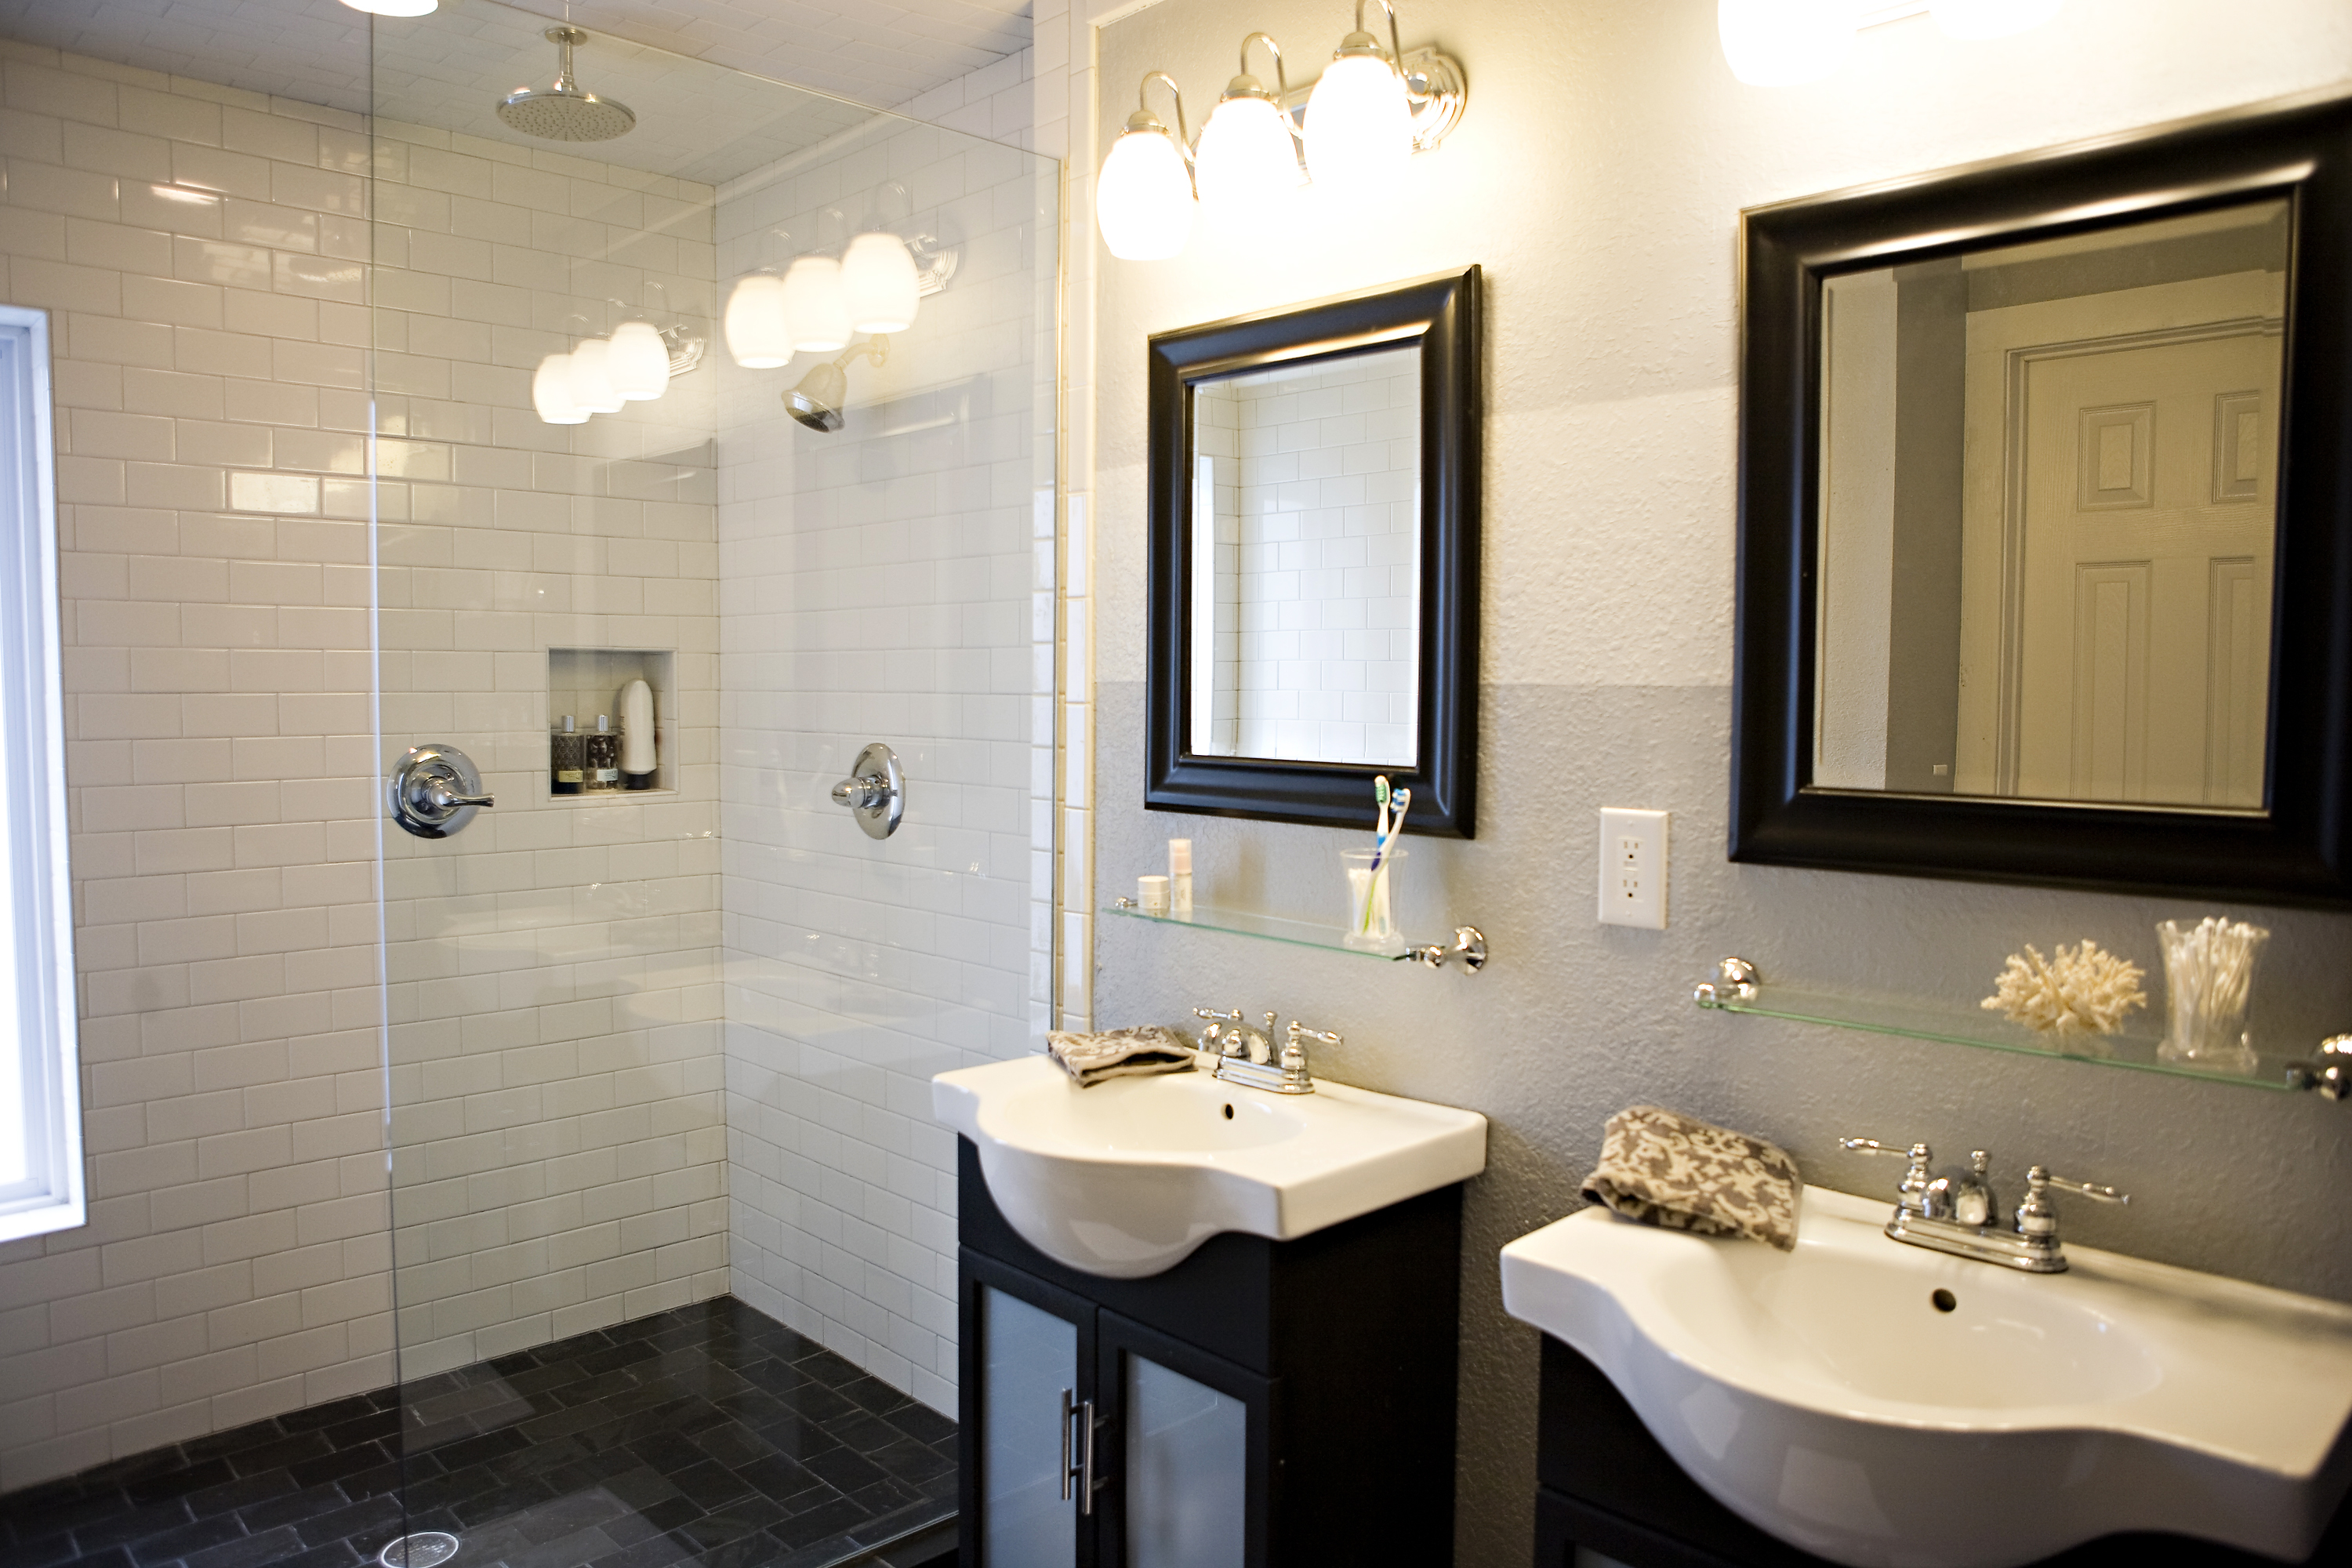 Small Space Bathroom Vanity Ideas With Stylish Black White Vanity Cabinets (View 11 of 20)